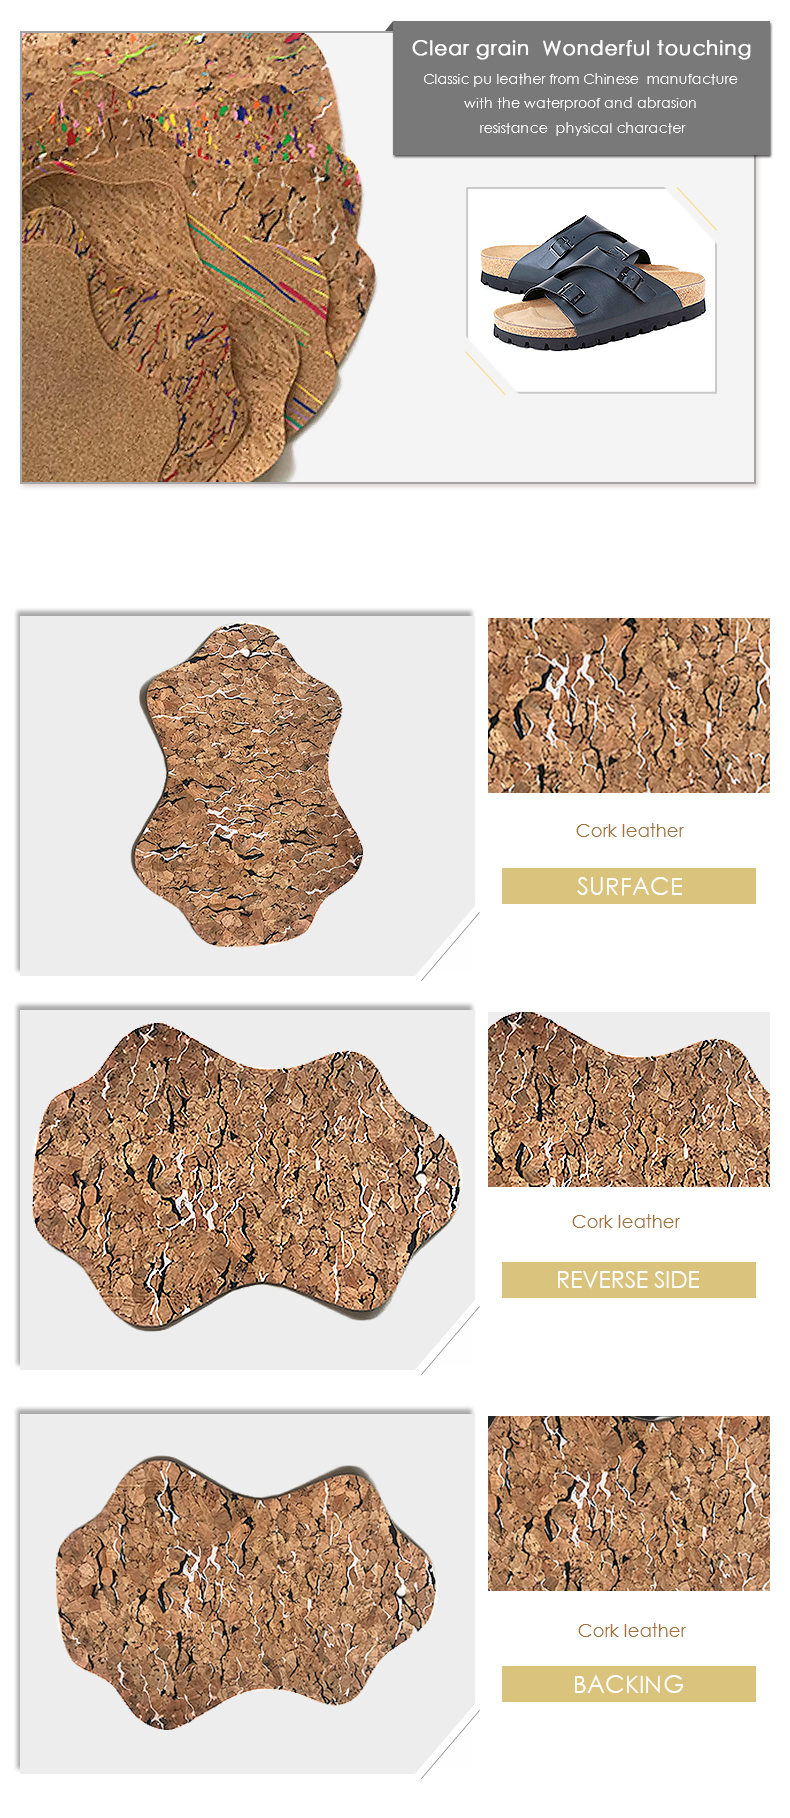 Micooson Good Quality Natural Cork Fabric Material For Slipper Sole